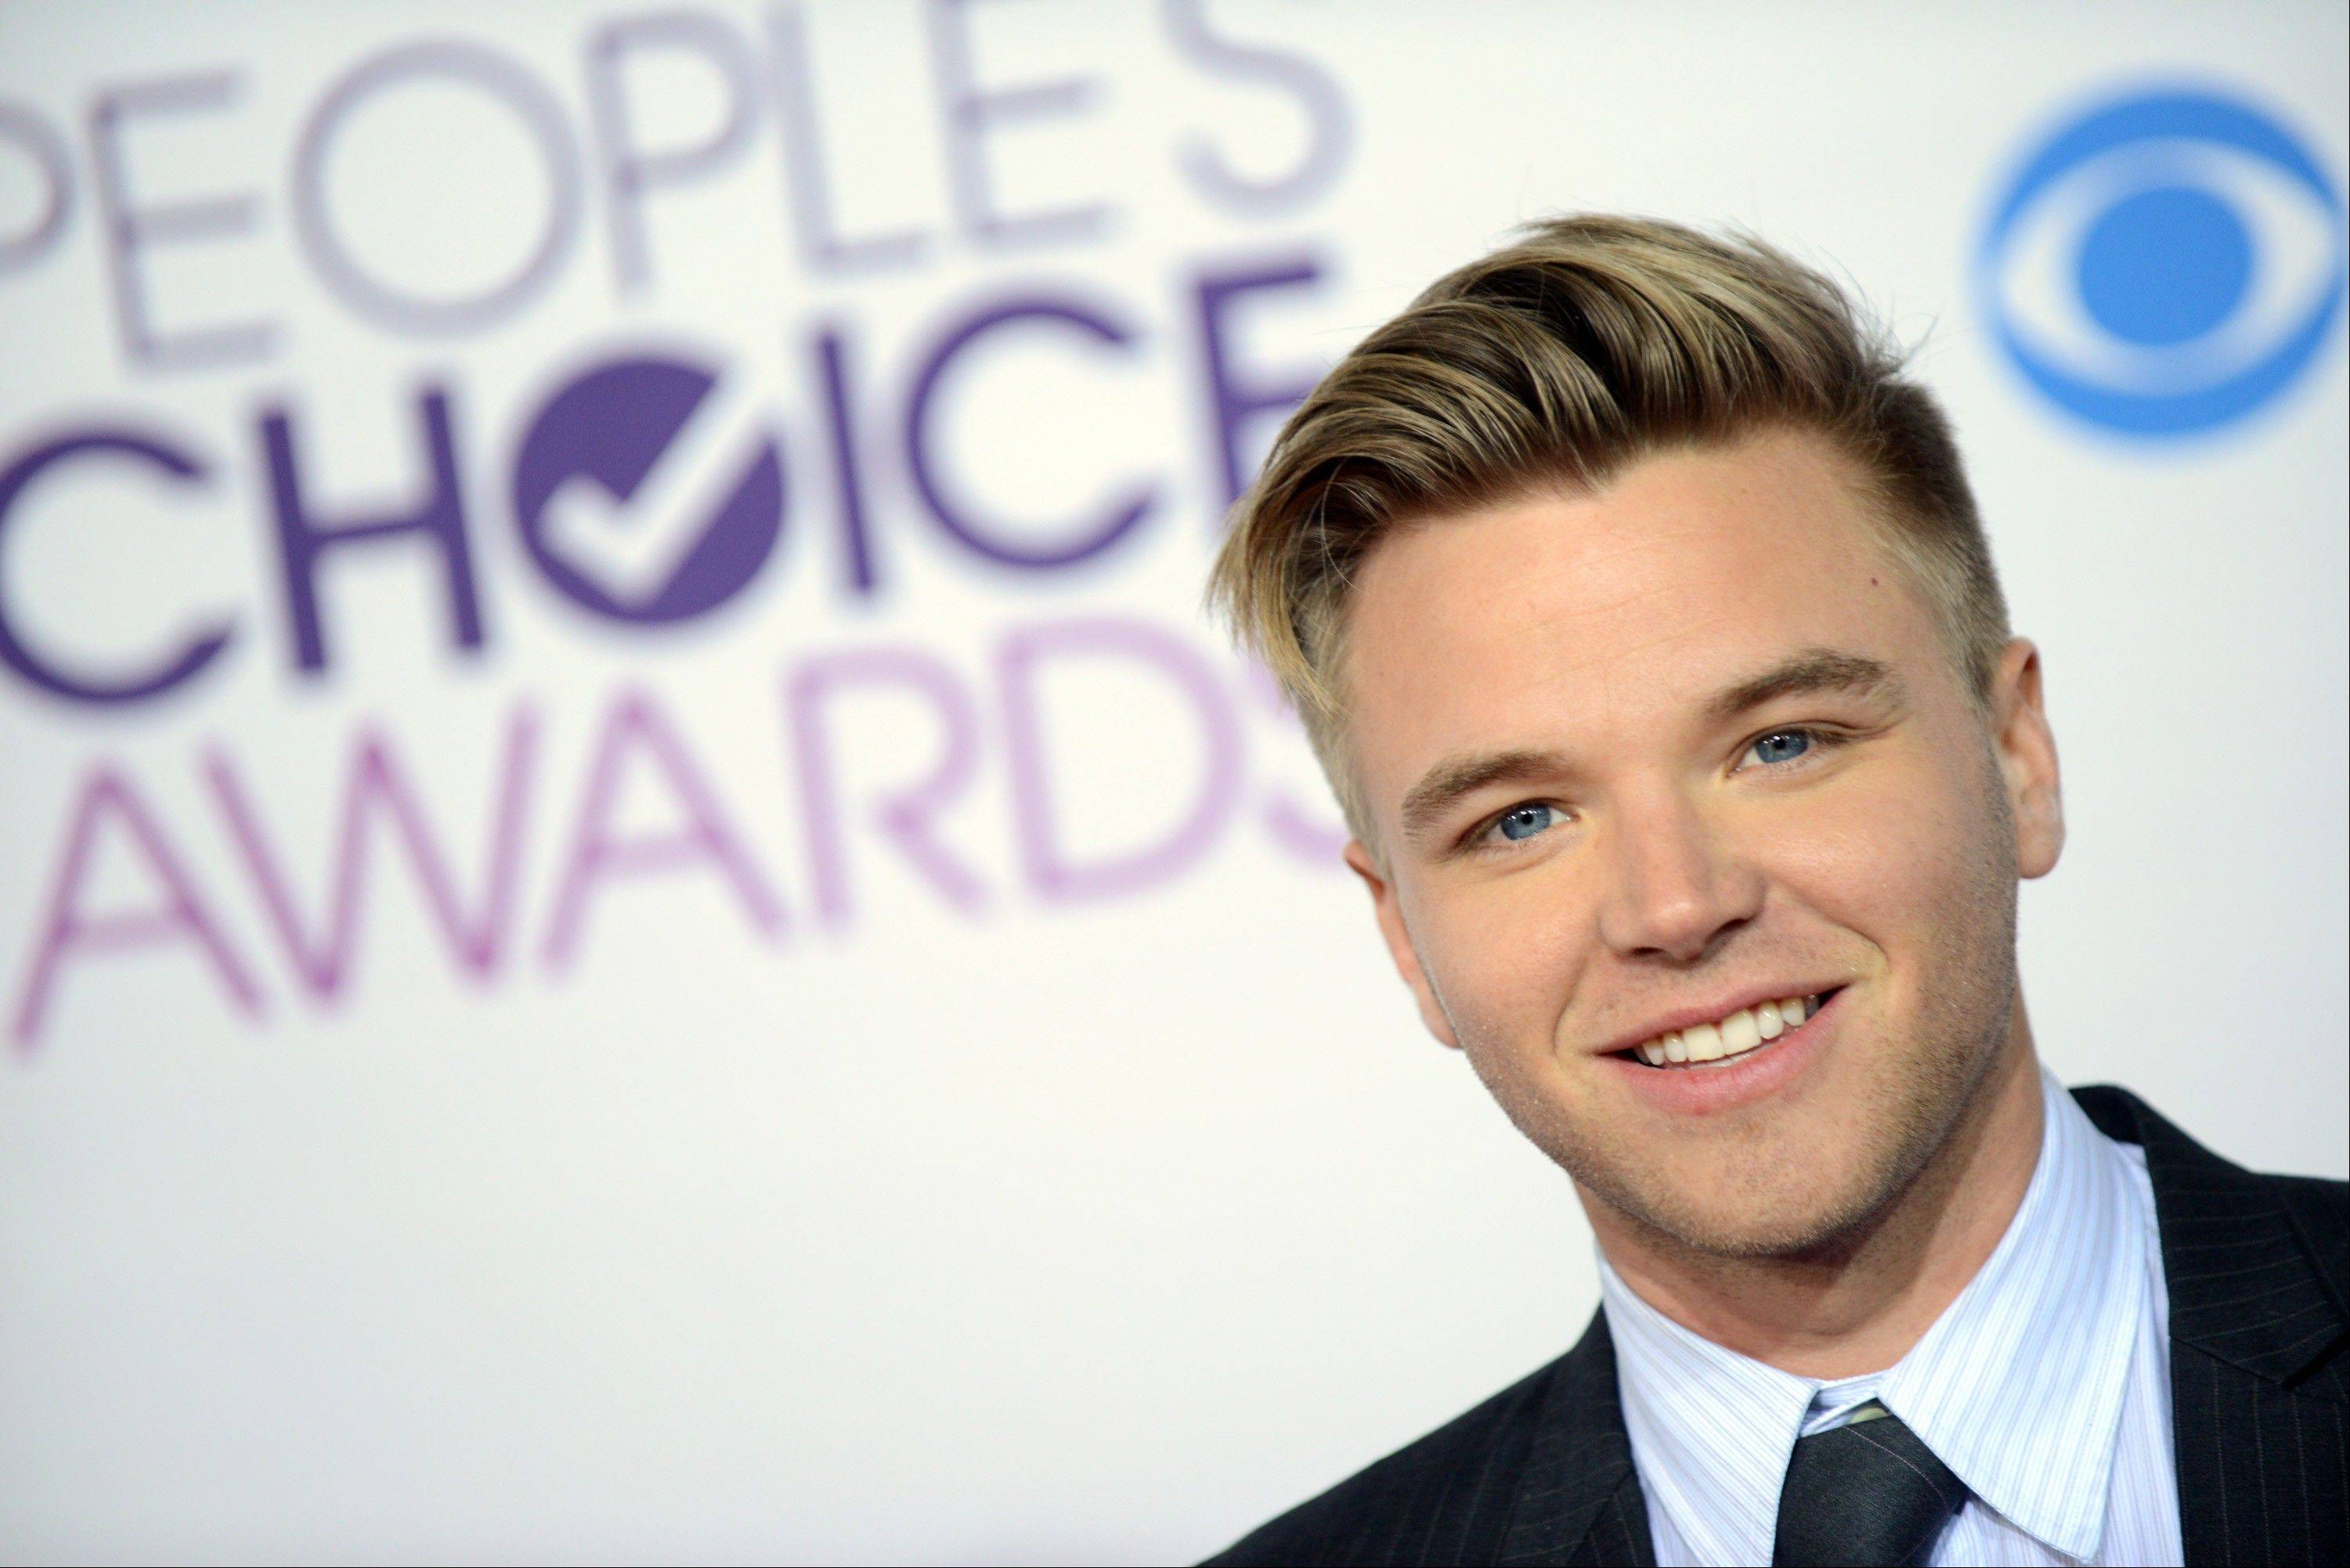 Brett Davern arrives at the People's Choice Awards at the Nokia Theatre on Wednesday Jan. 9, 2013, in Los Angeles.